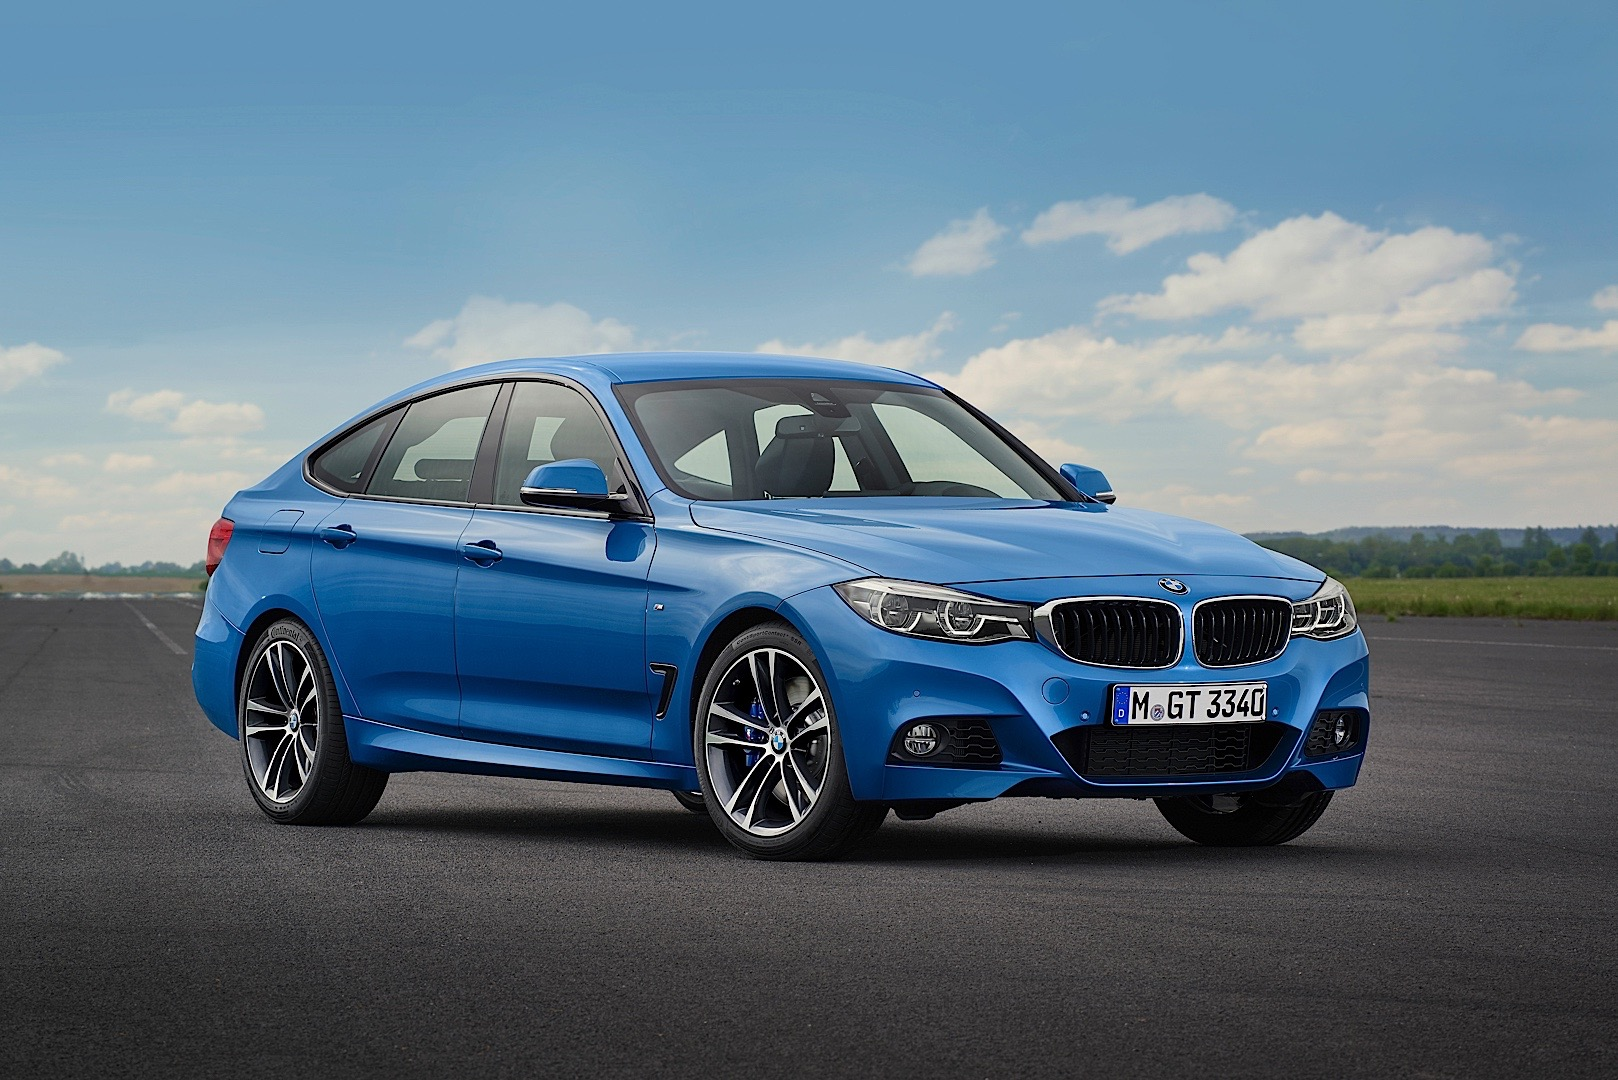 2016 Bmw 3 Series Gran Turismo Facelift Is All Things To All